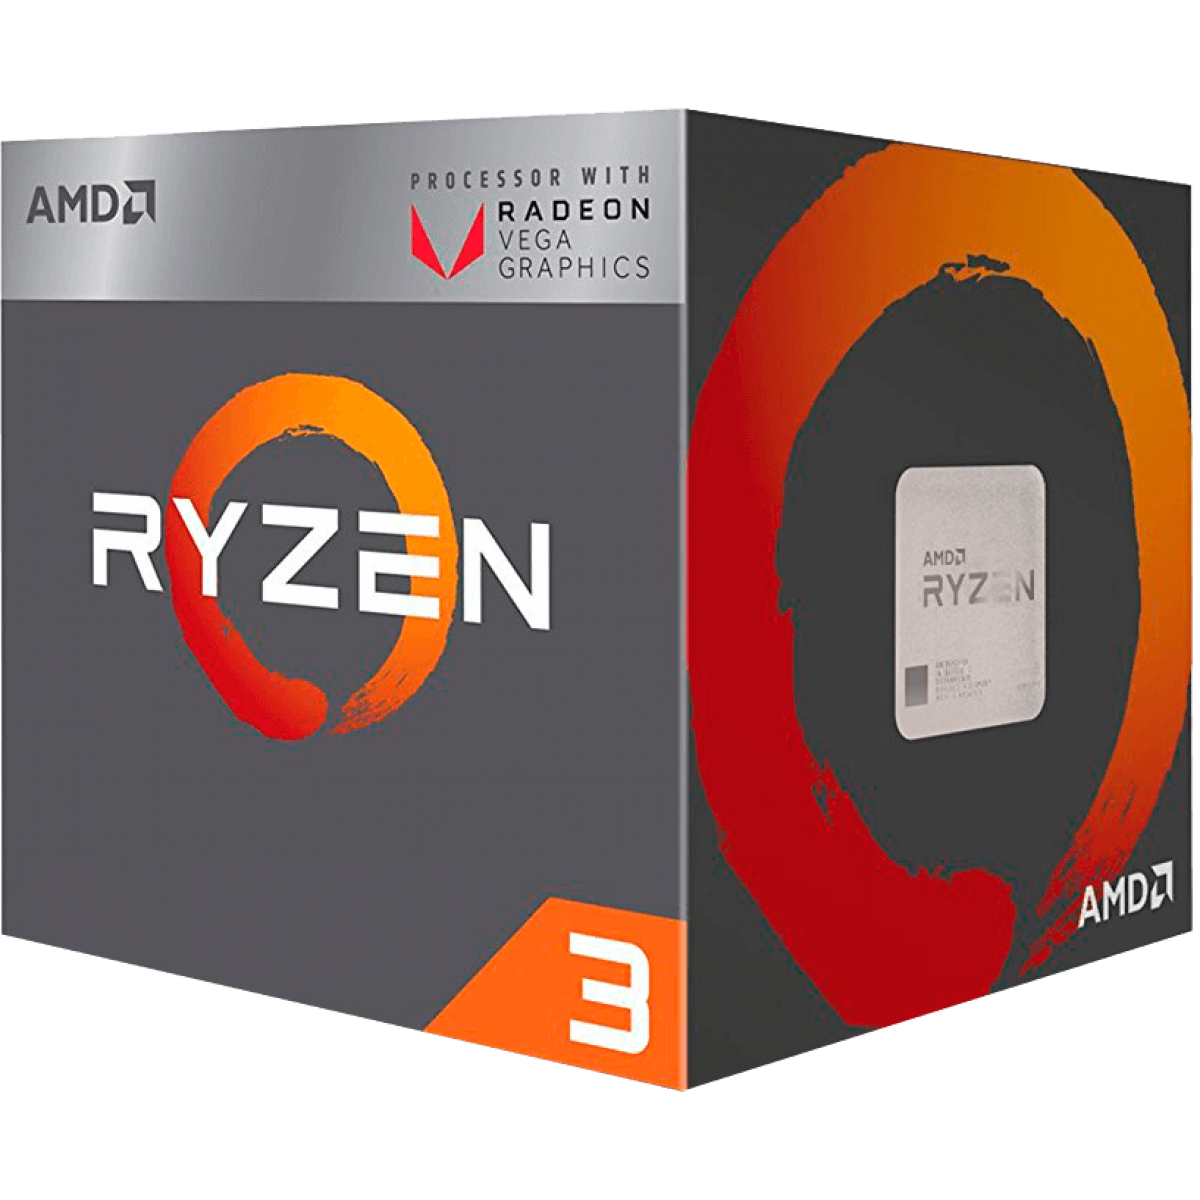 Processador AMD Ryzen 3 2200G 3.5GHz (3.7GHz Turbo), 4-Cores 4-Threads, Cooler Wraith Stealth, AM4, YD2200C5FBBOX